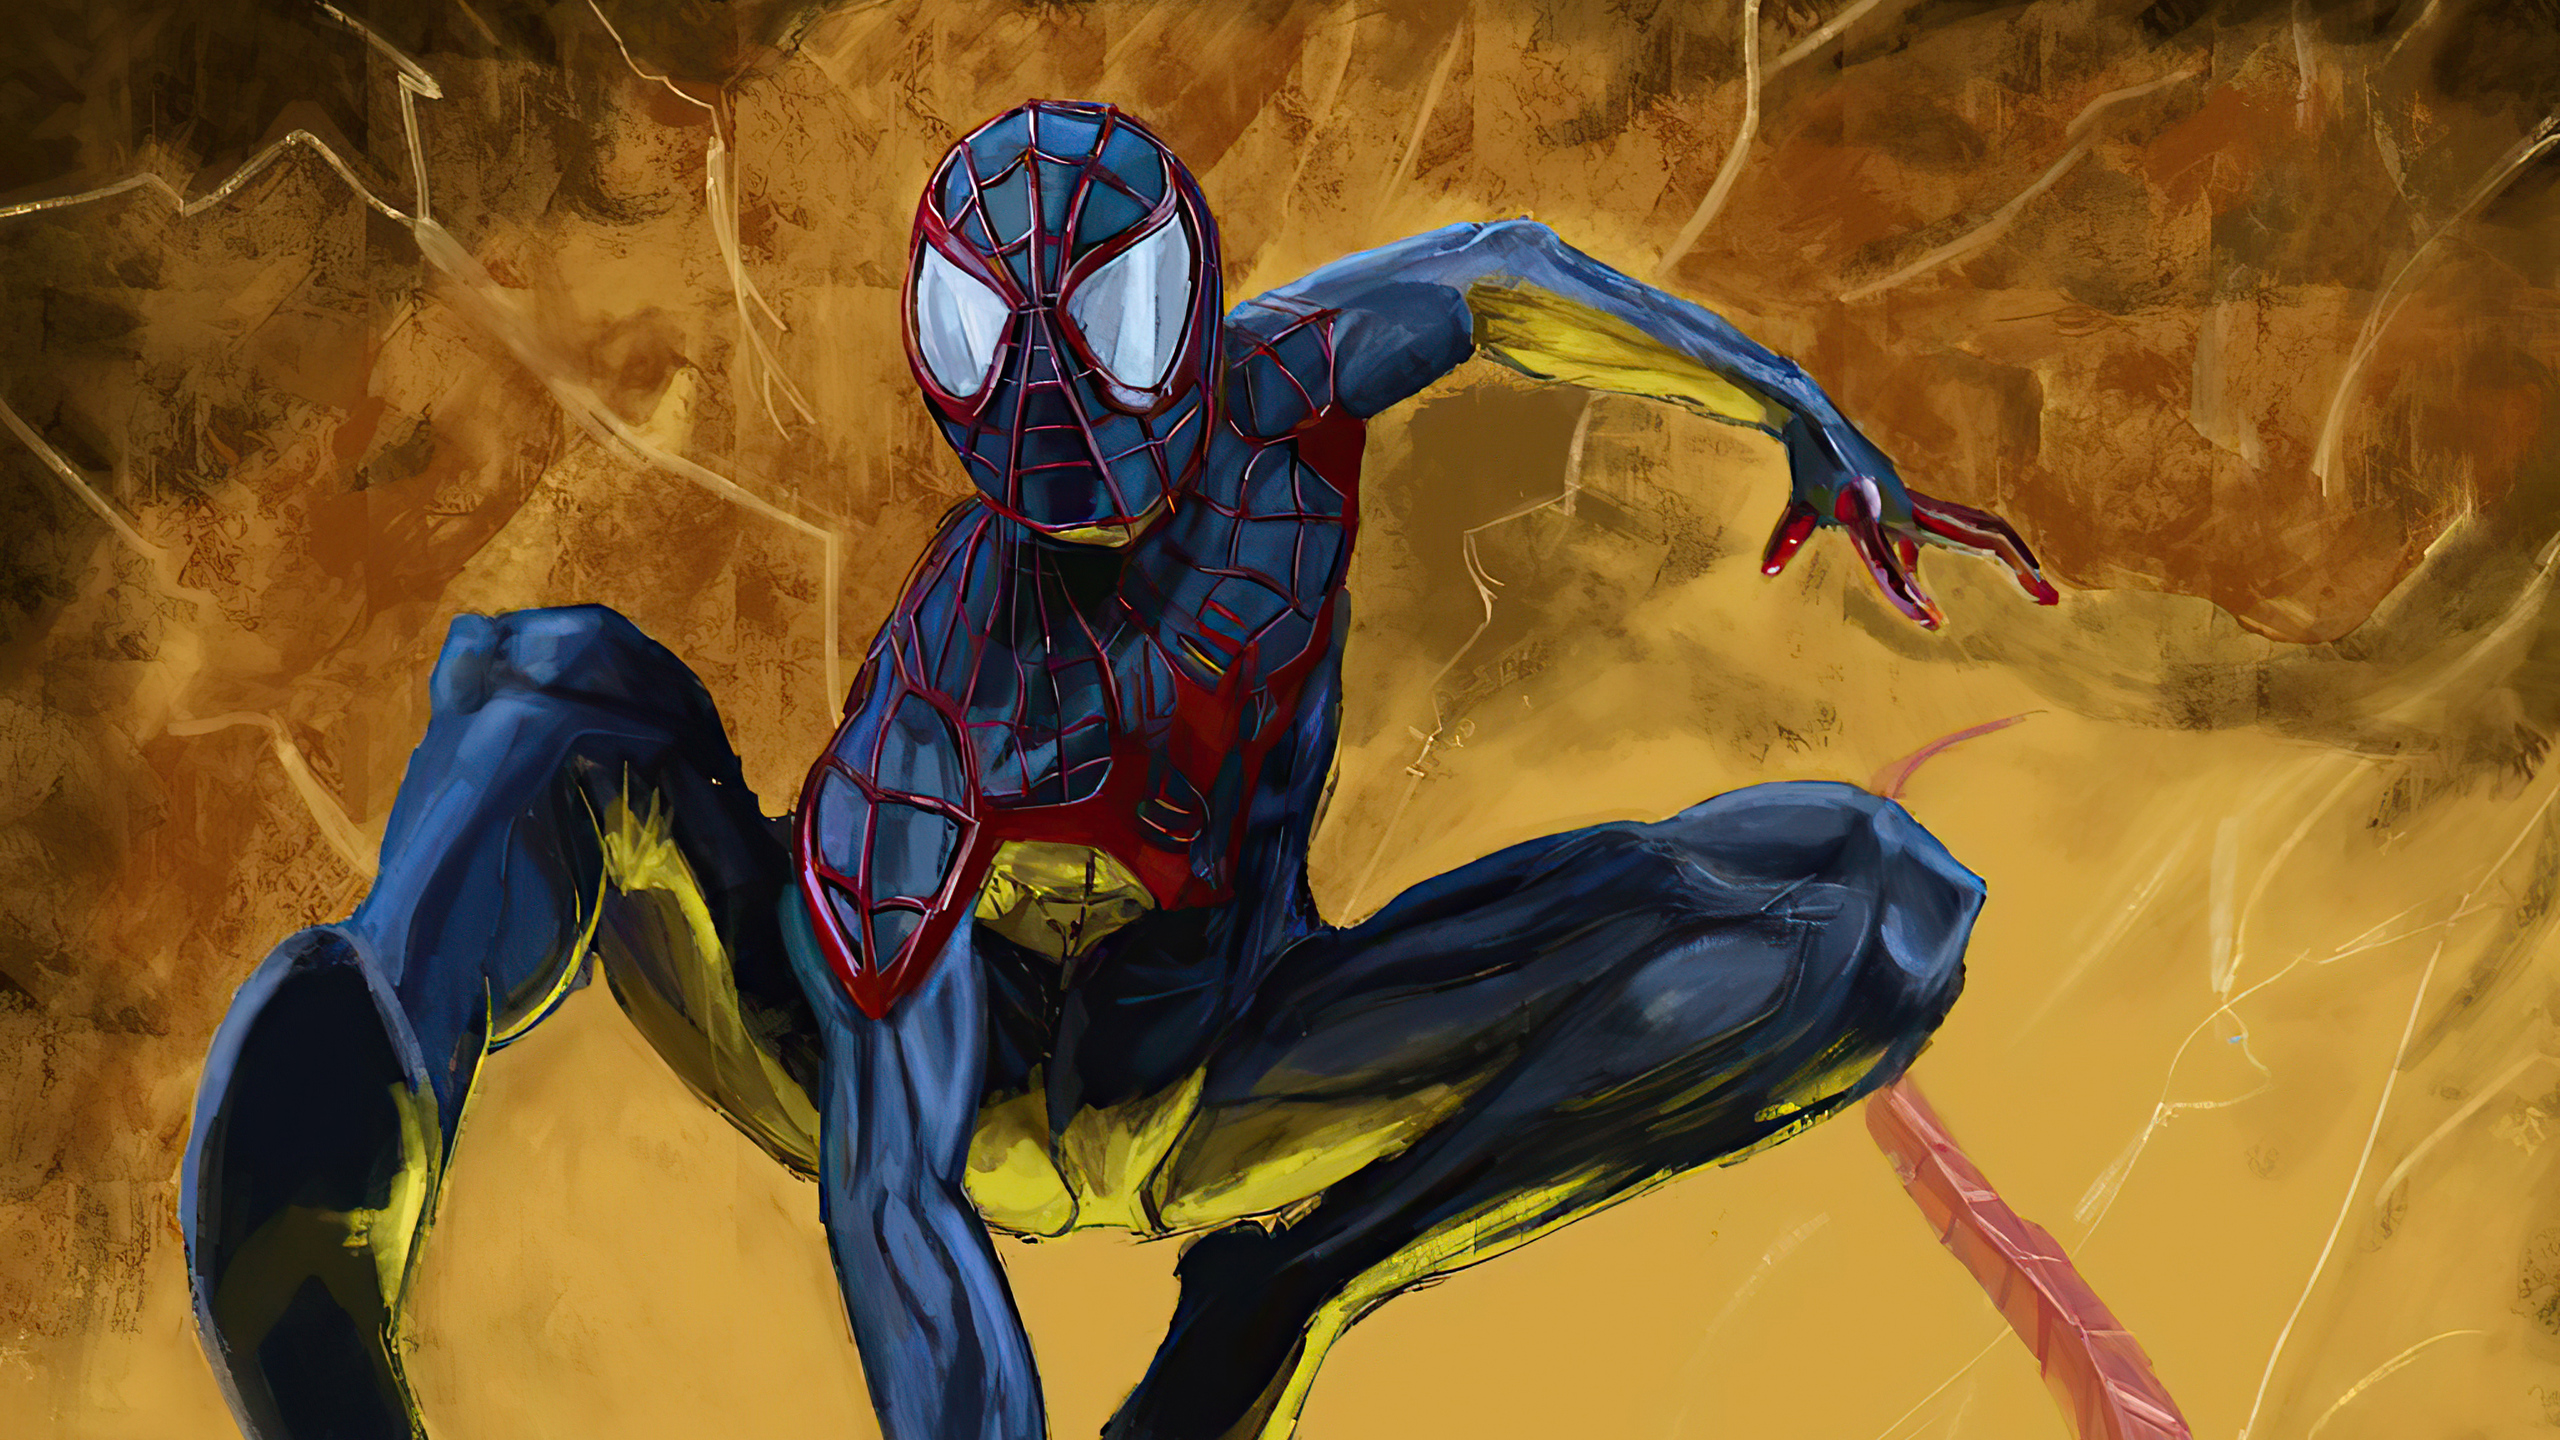 2560x1440 Spider Man V Venom 4k 1440P Resolution HD 4k ...